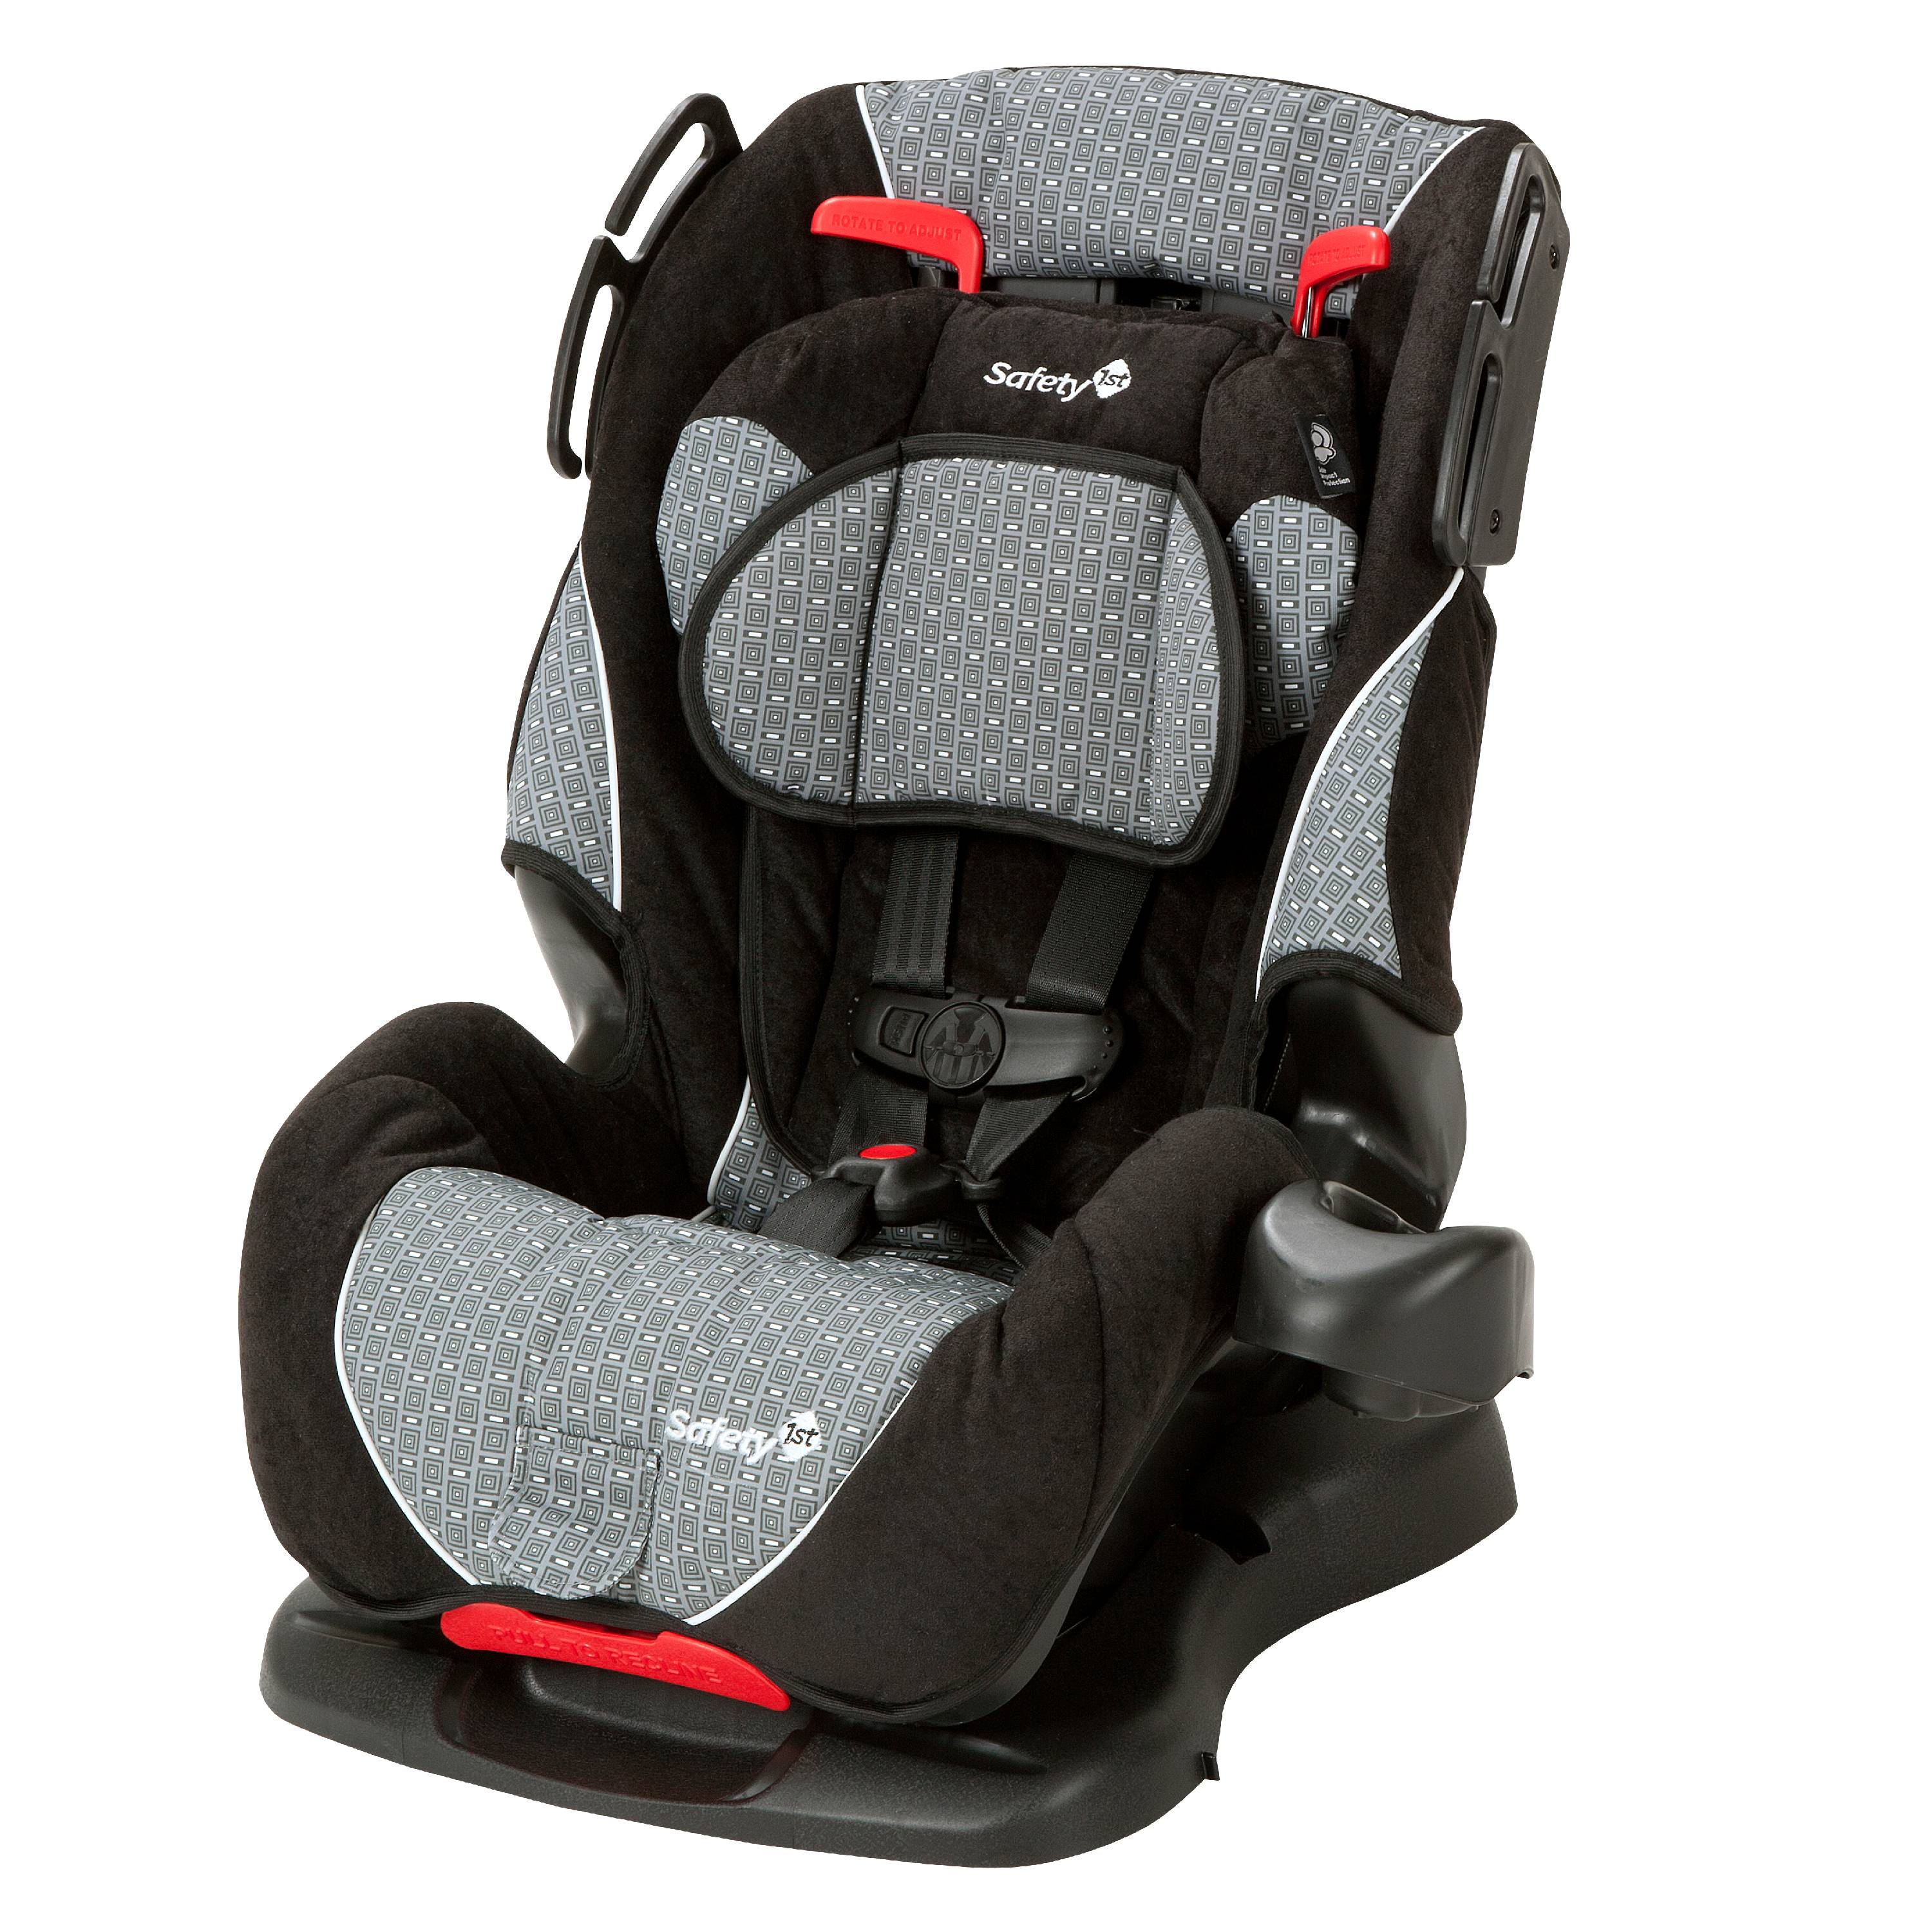 Safety 1ˢᵗ All-in-One Sport Convertible Car Seat, Coleman